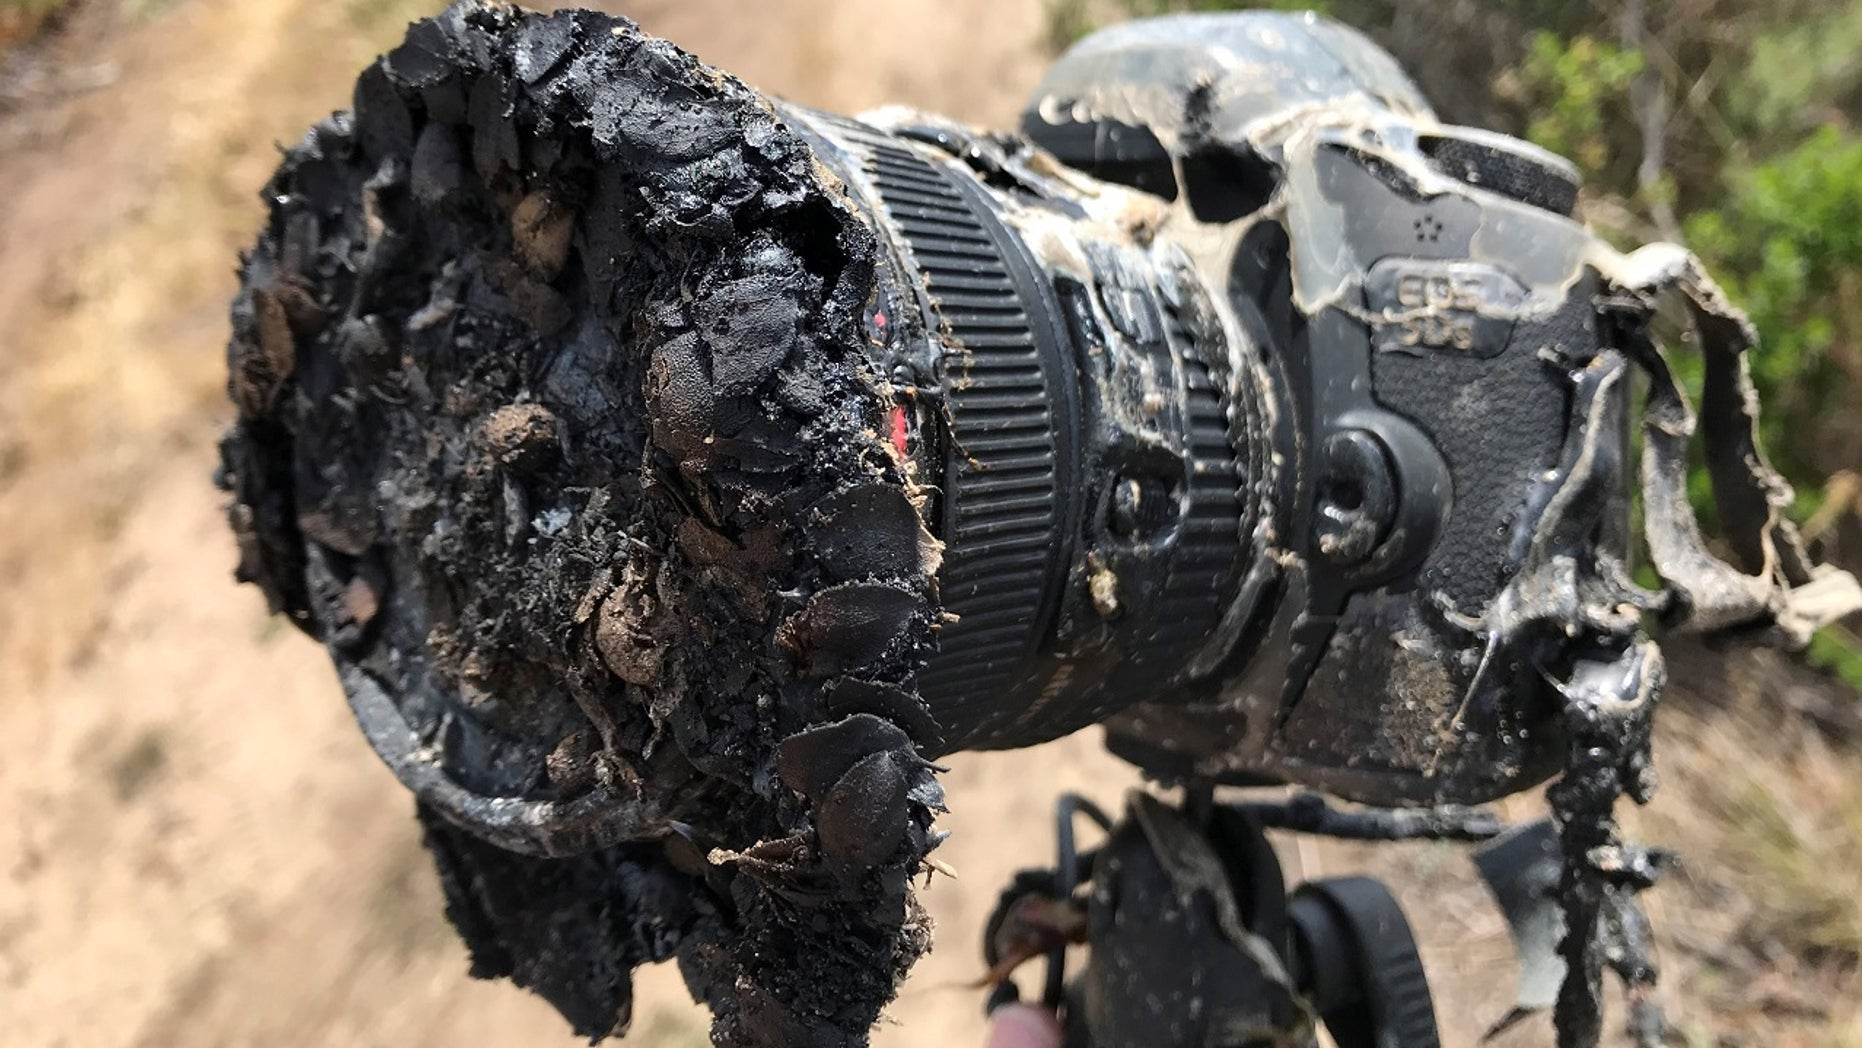 A NASA camera melted after it was engulfed in flames from a brush fire.